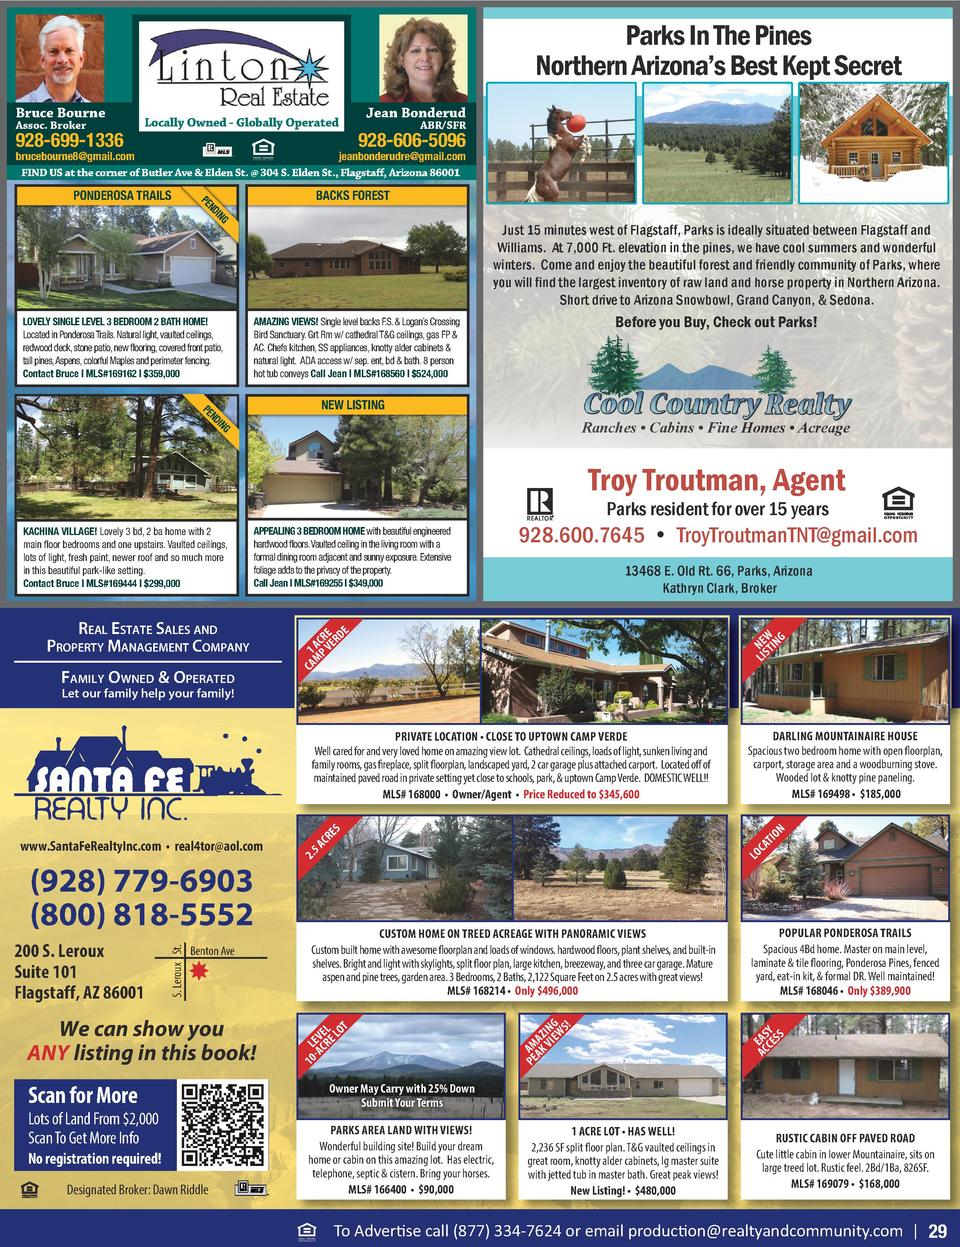 Parks In The Pines Northern Arizona   s Best Kept Secret Bruce Bourne Assoc. Broker  928-699-1336  Locally Owned - Globall...